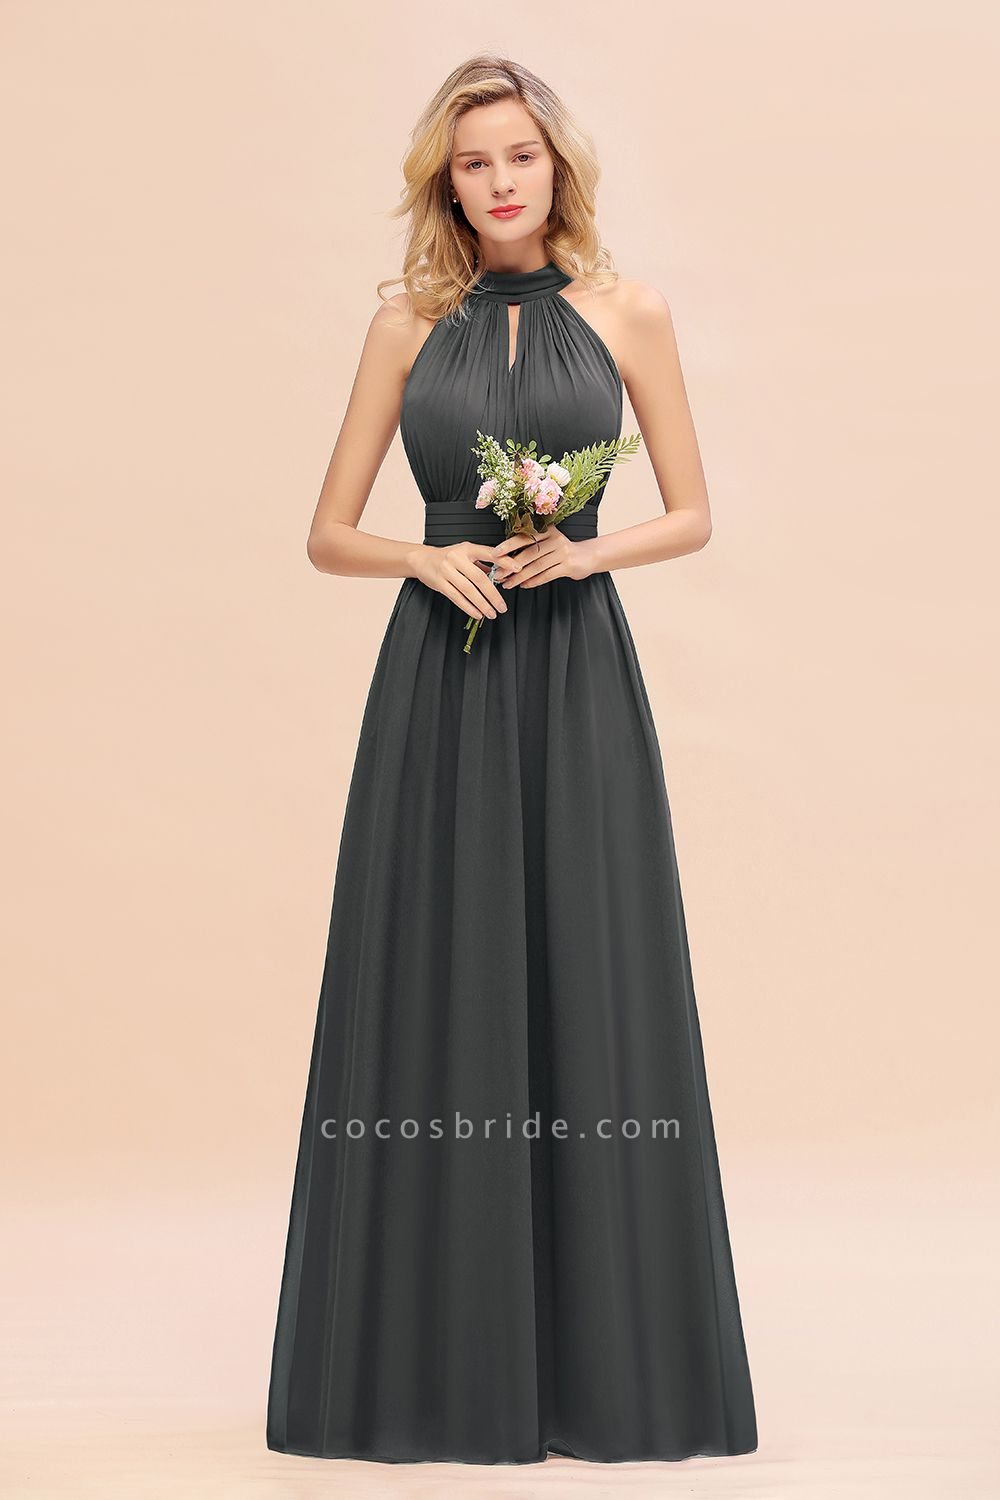 BM0758 Glamorous High-Neck Halter Bridesmaid Affordable Dresses with Ruffle